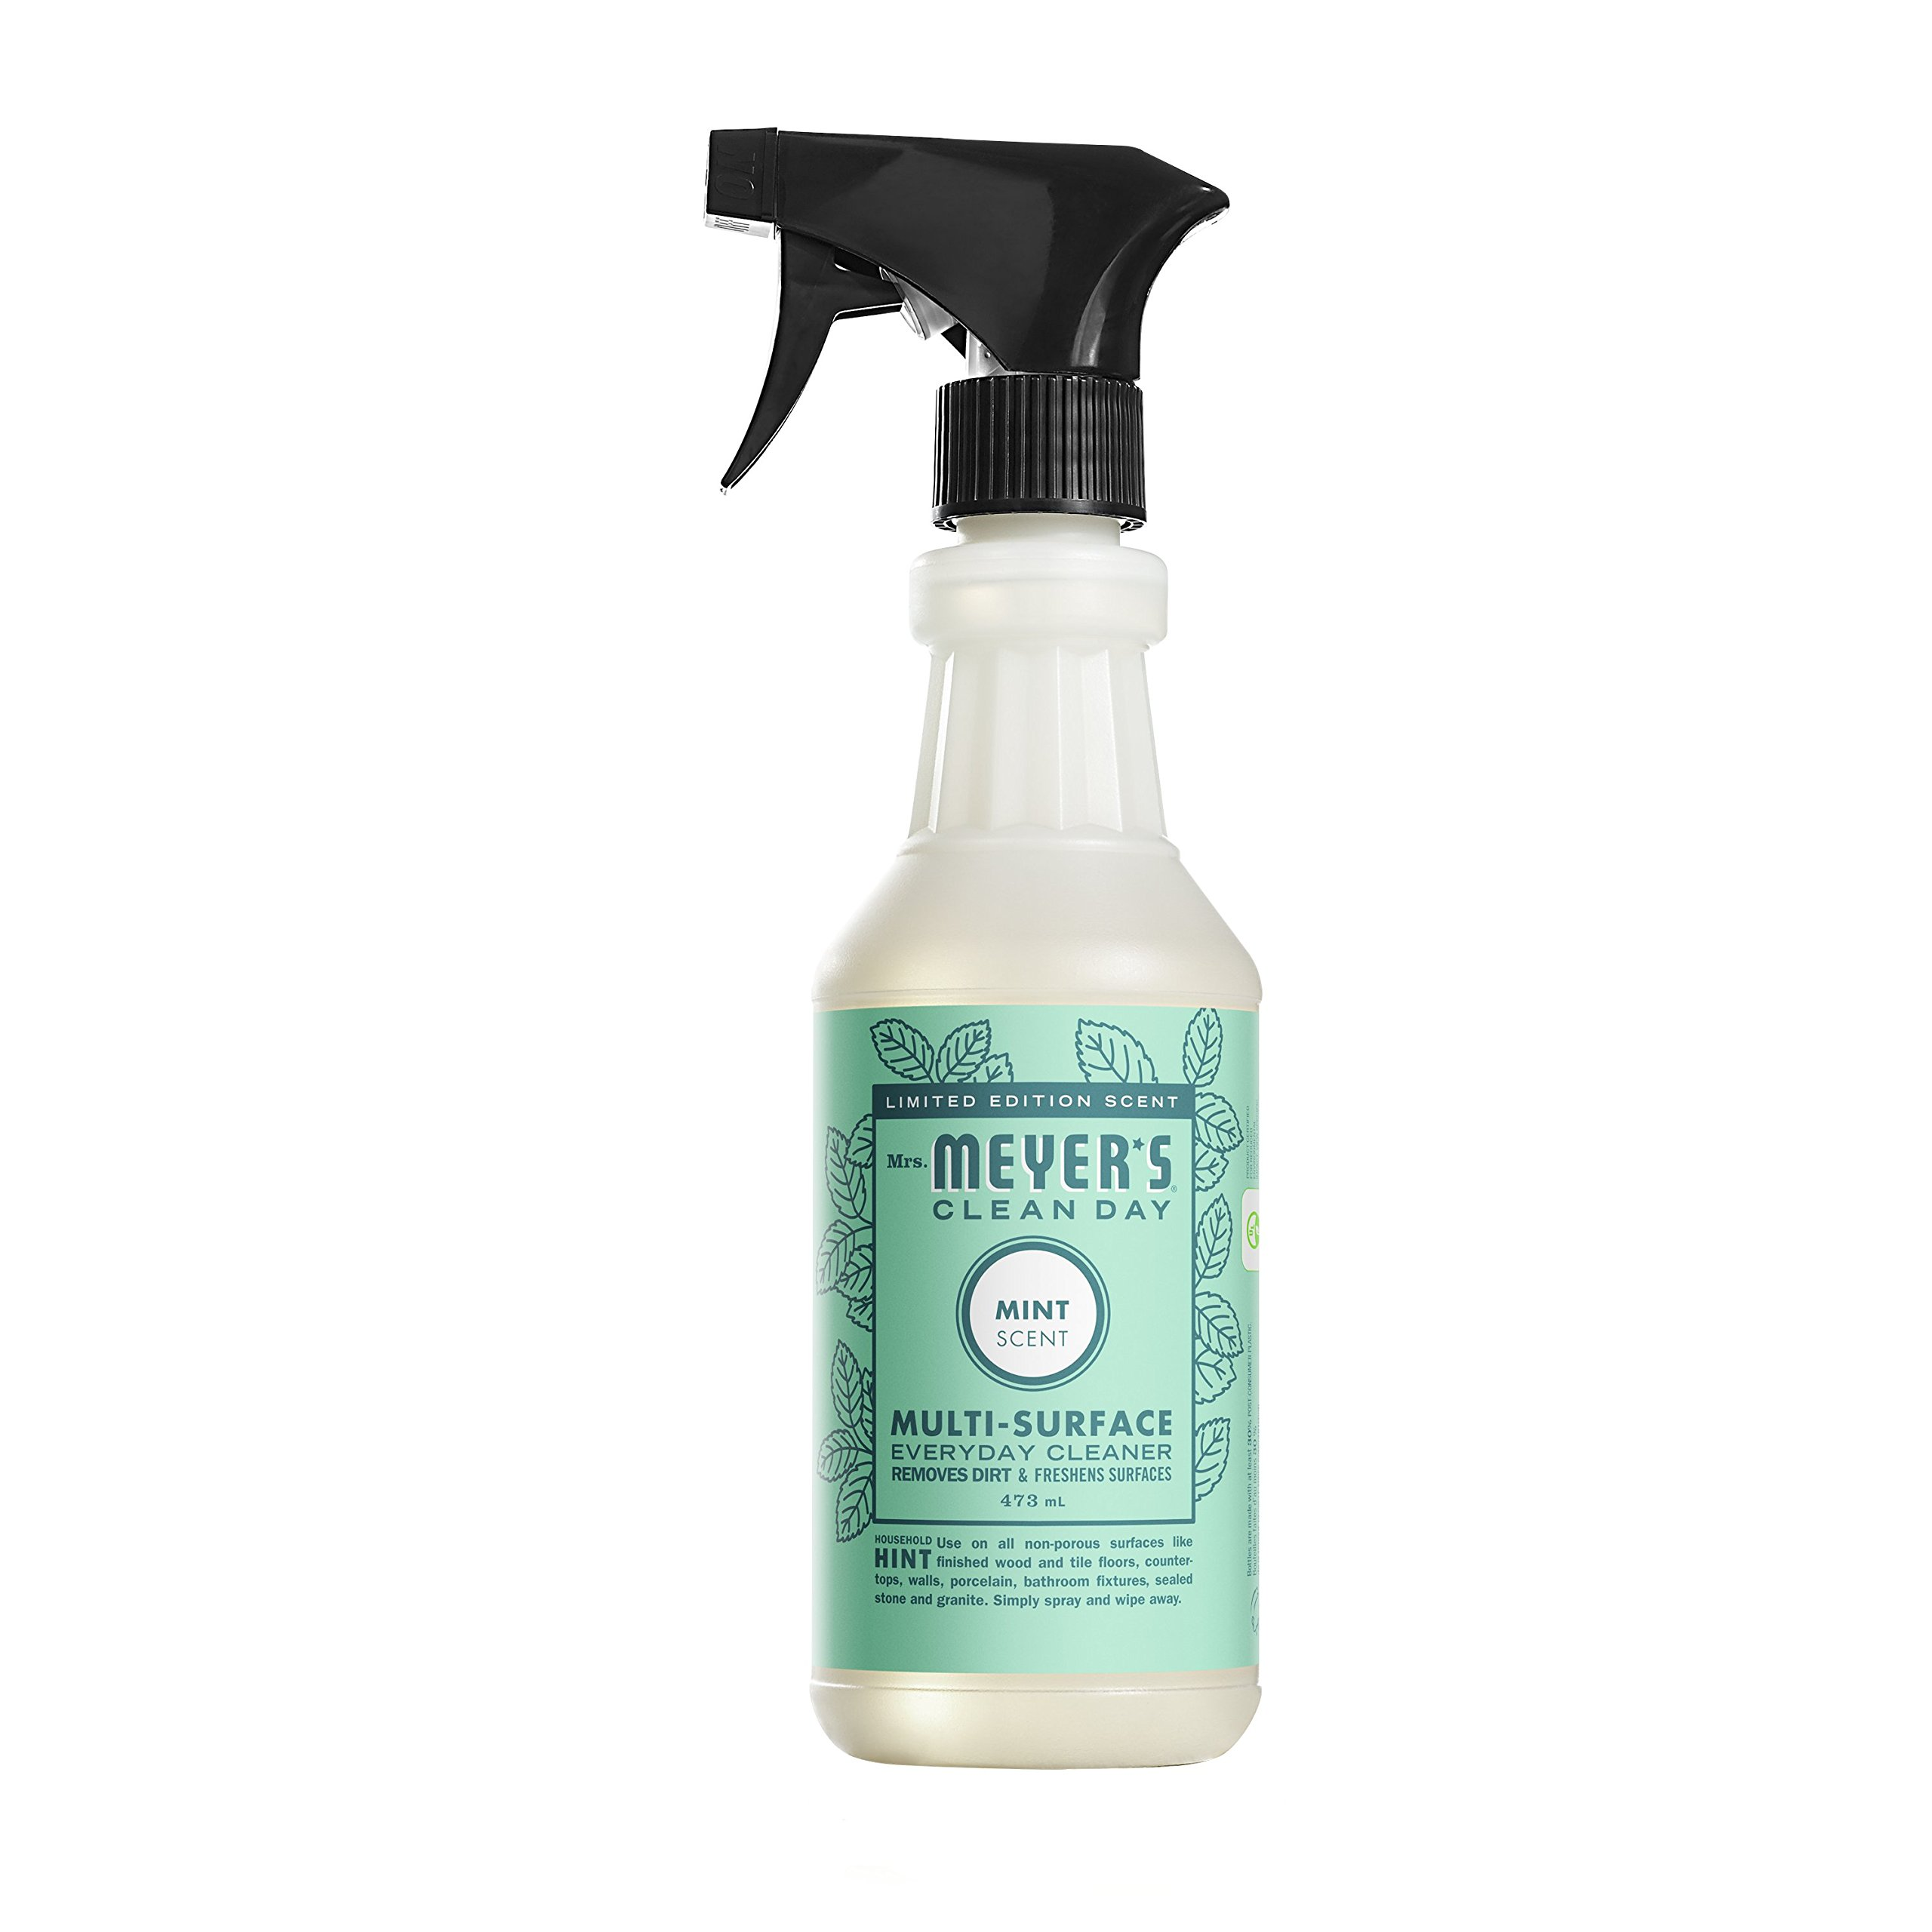 Mrs. Meyer's Clean Day Mint Multi-Surface Everyday Cleaner, 16 Fluid Ounce (Pack of 6)